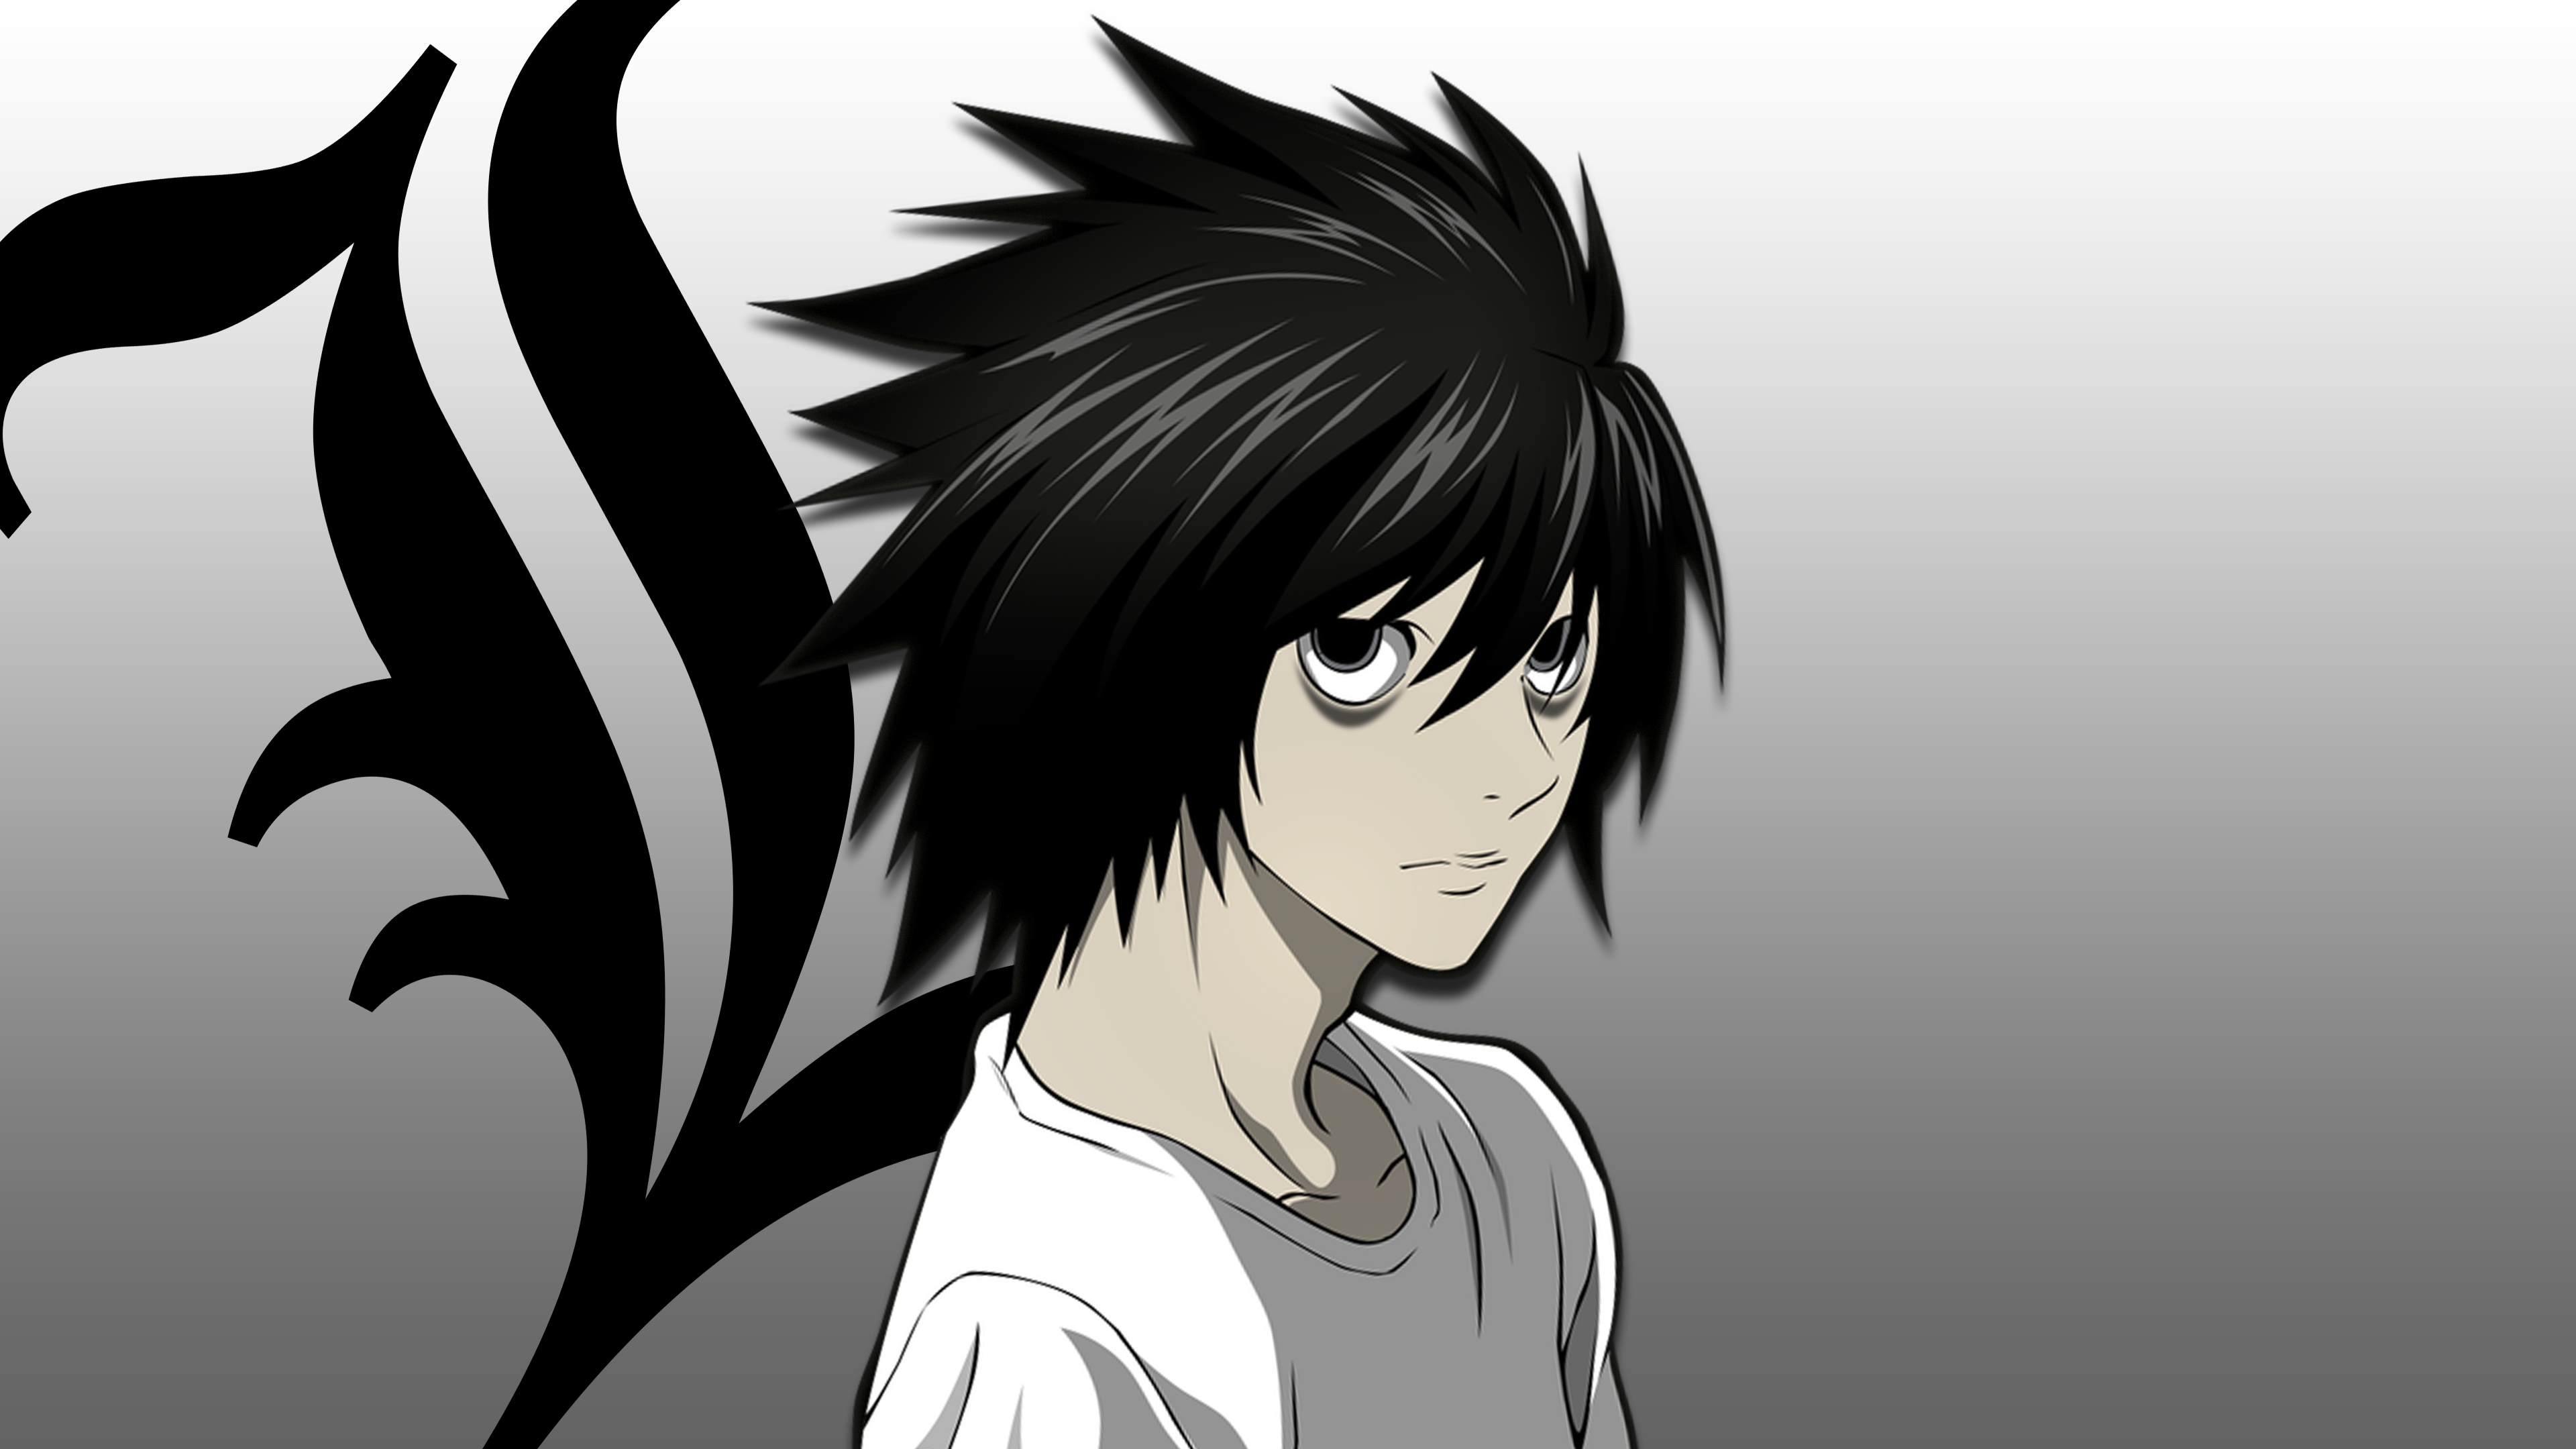 L death note anime